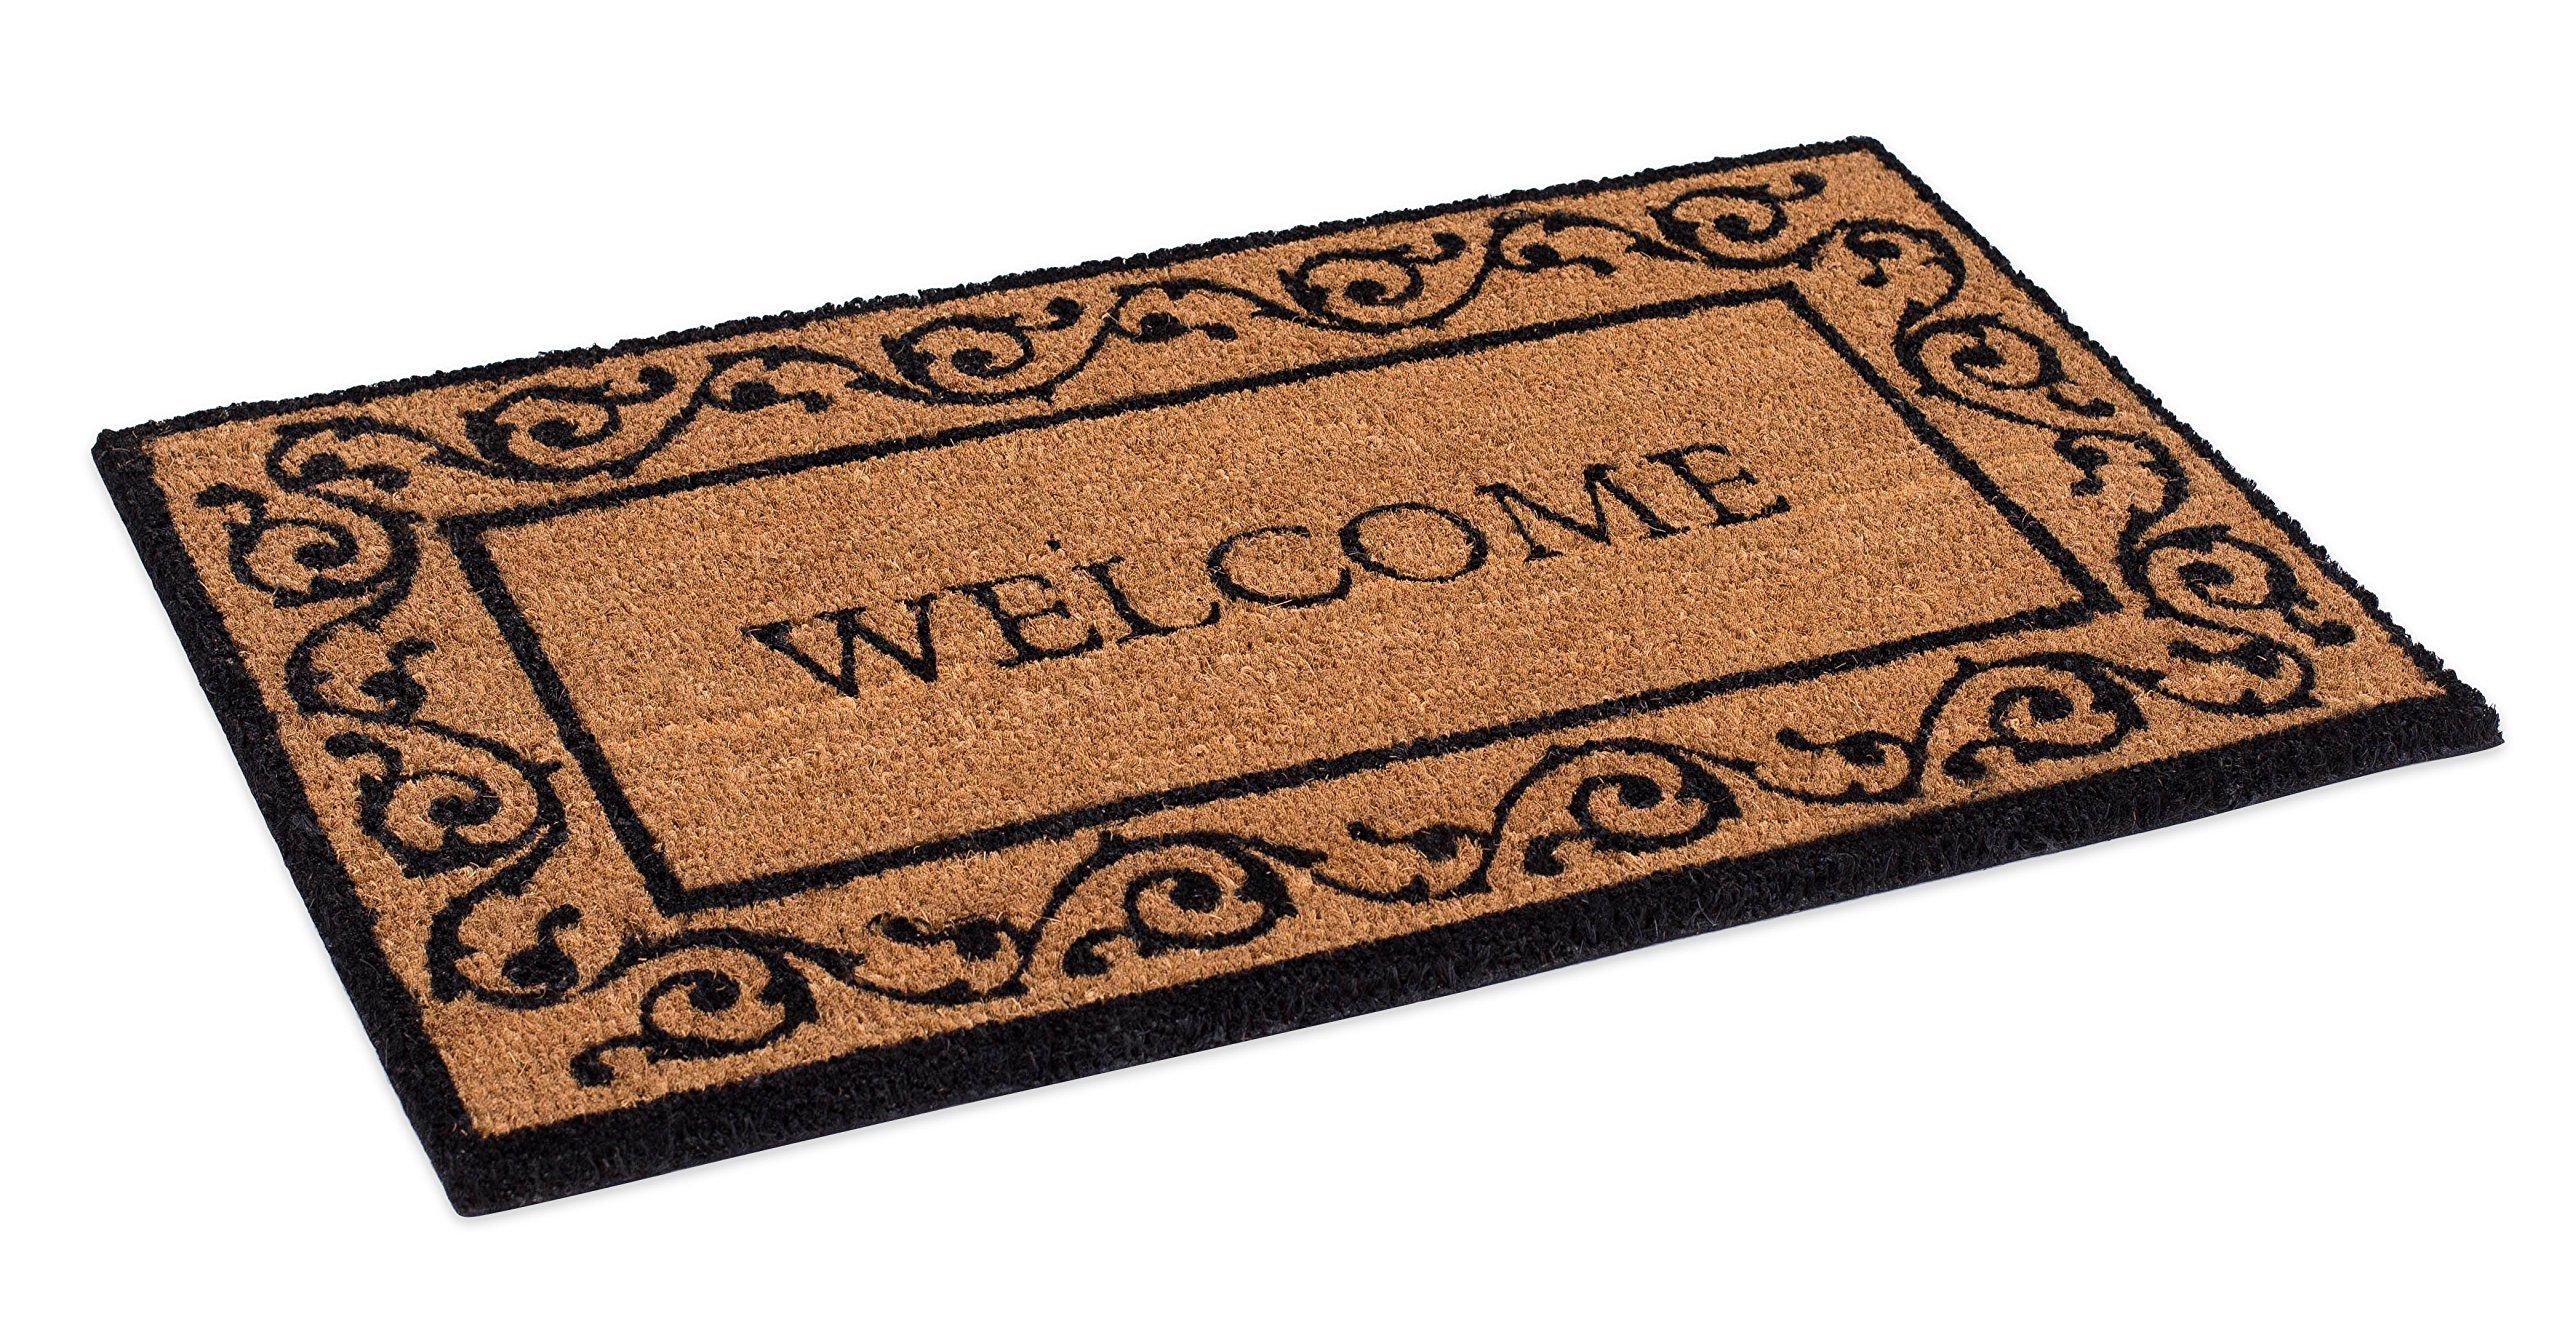 BirdRock Home Welcome Coir Doormat with Scroll Border | 18 x 30 Inch | Standard Welcome Mat with Black Decorative Border | Natural Fade | Vinyl Backed | Outdoor